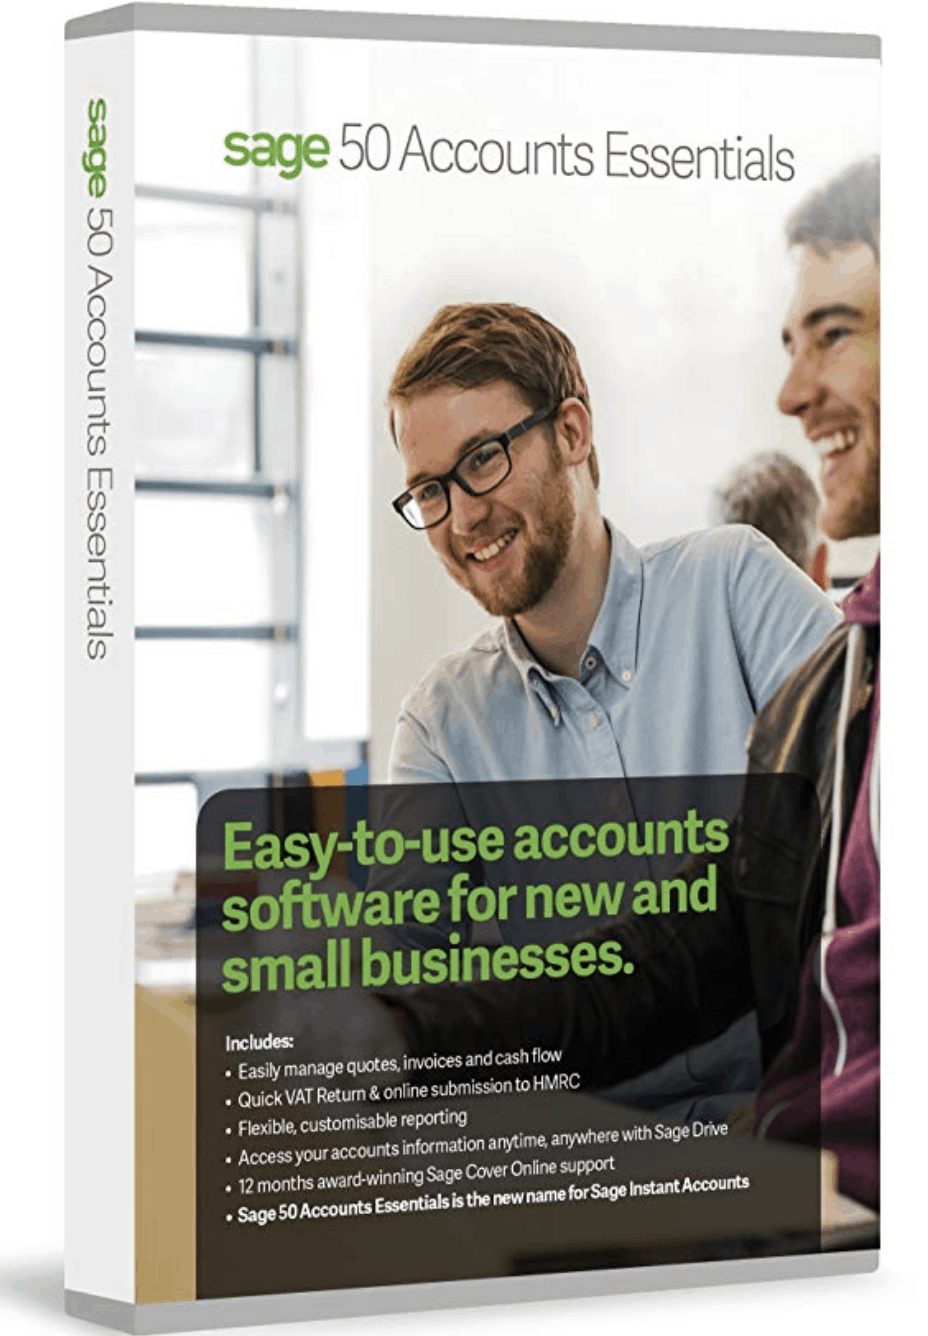 Sage 50 Accounts Essentials Software